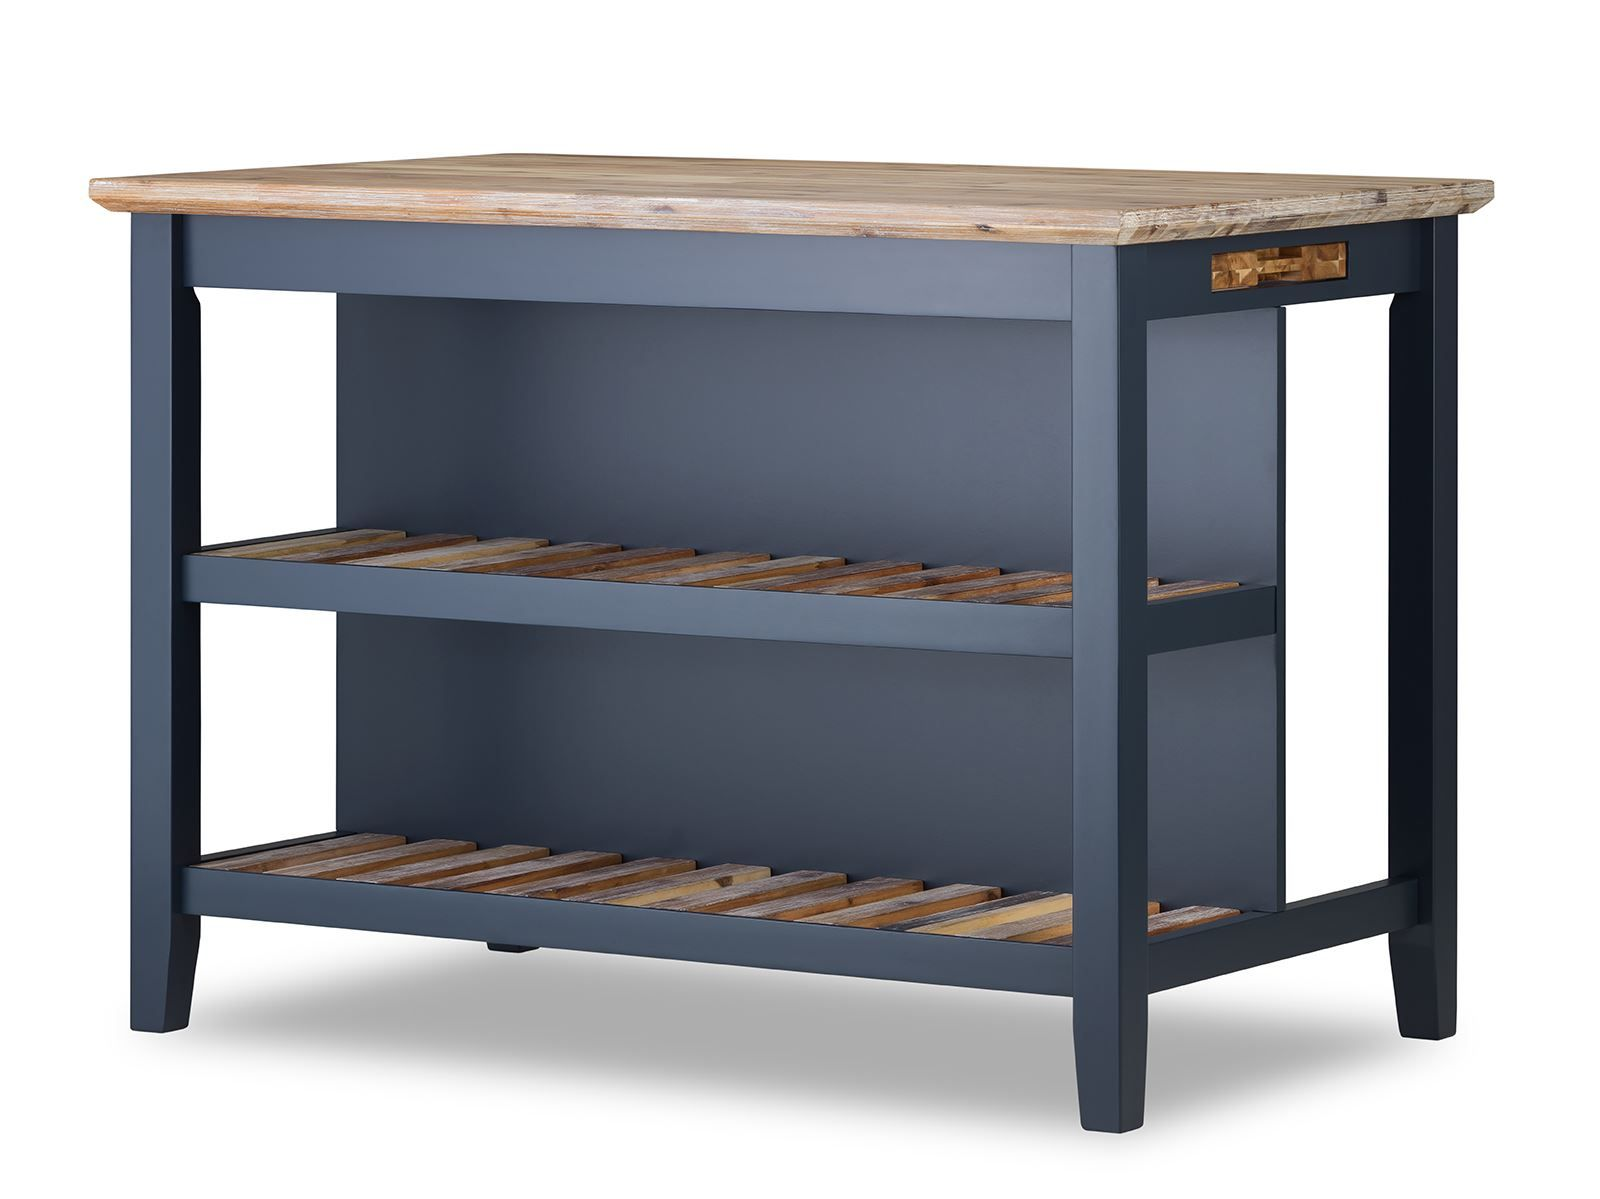 Florence Breakfast Bar With 2 Large Shelves Small Kitchen Island With Storage Ebay In 2020 Small Kitchen Island Portable Kitchen Portable Kitchen Island